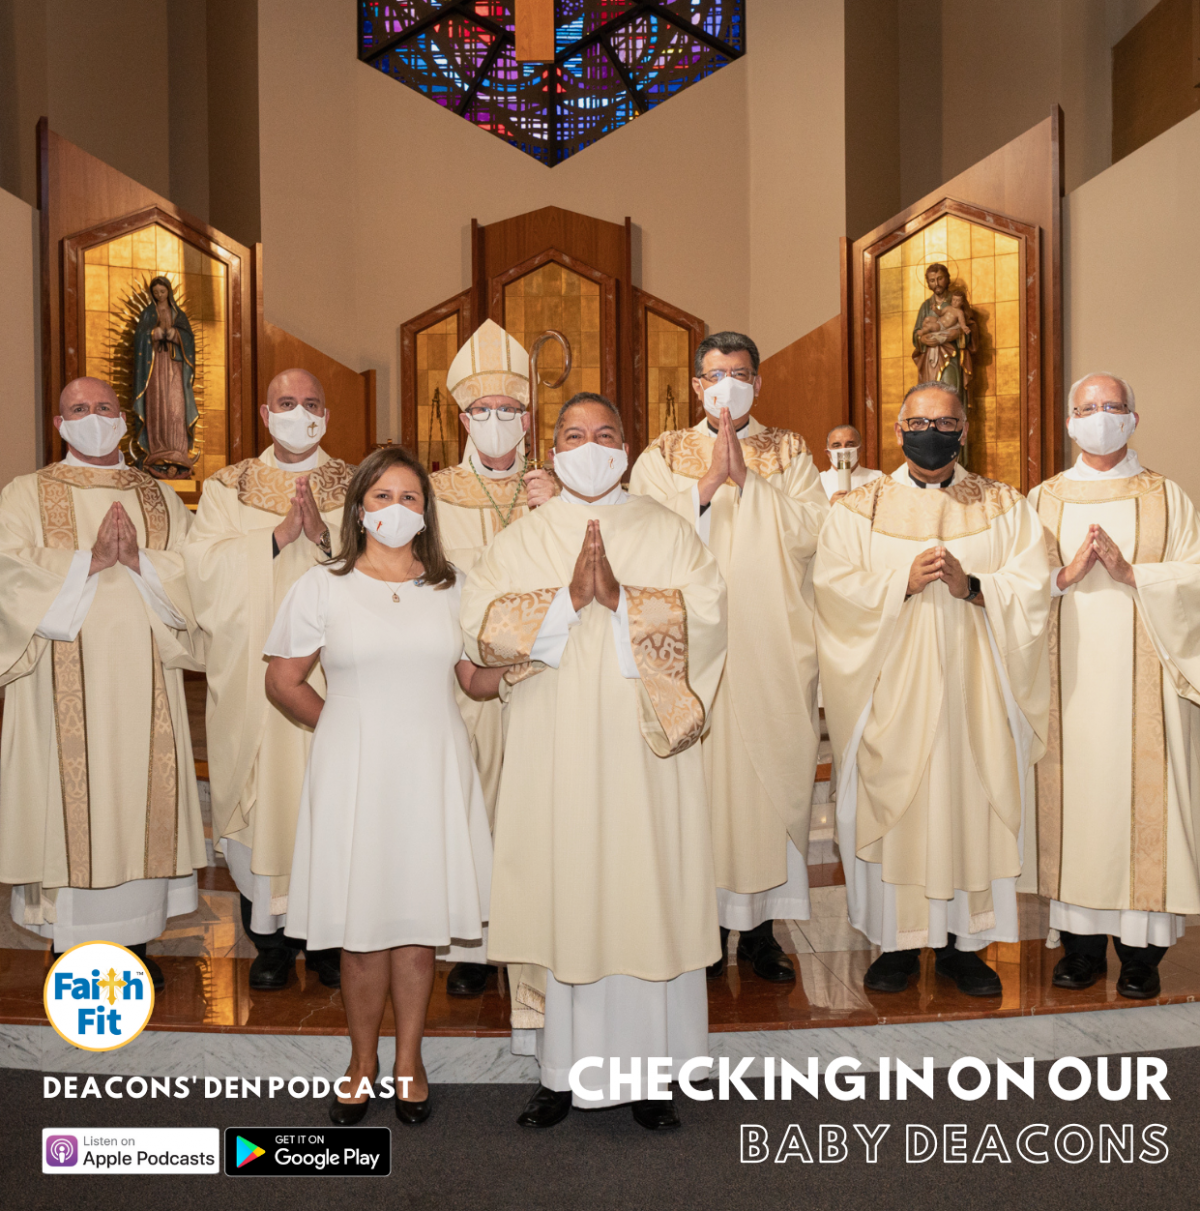 #7: Checking in with Our Baby Deacons